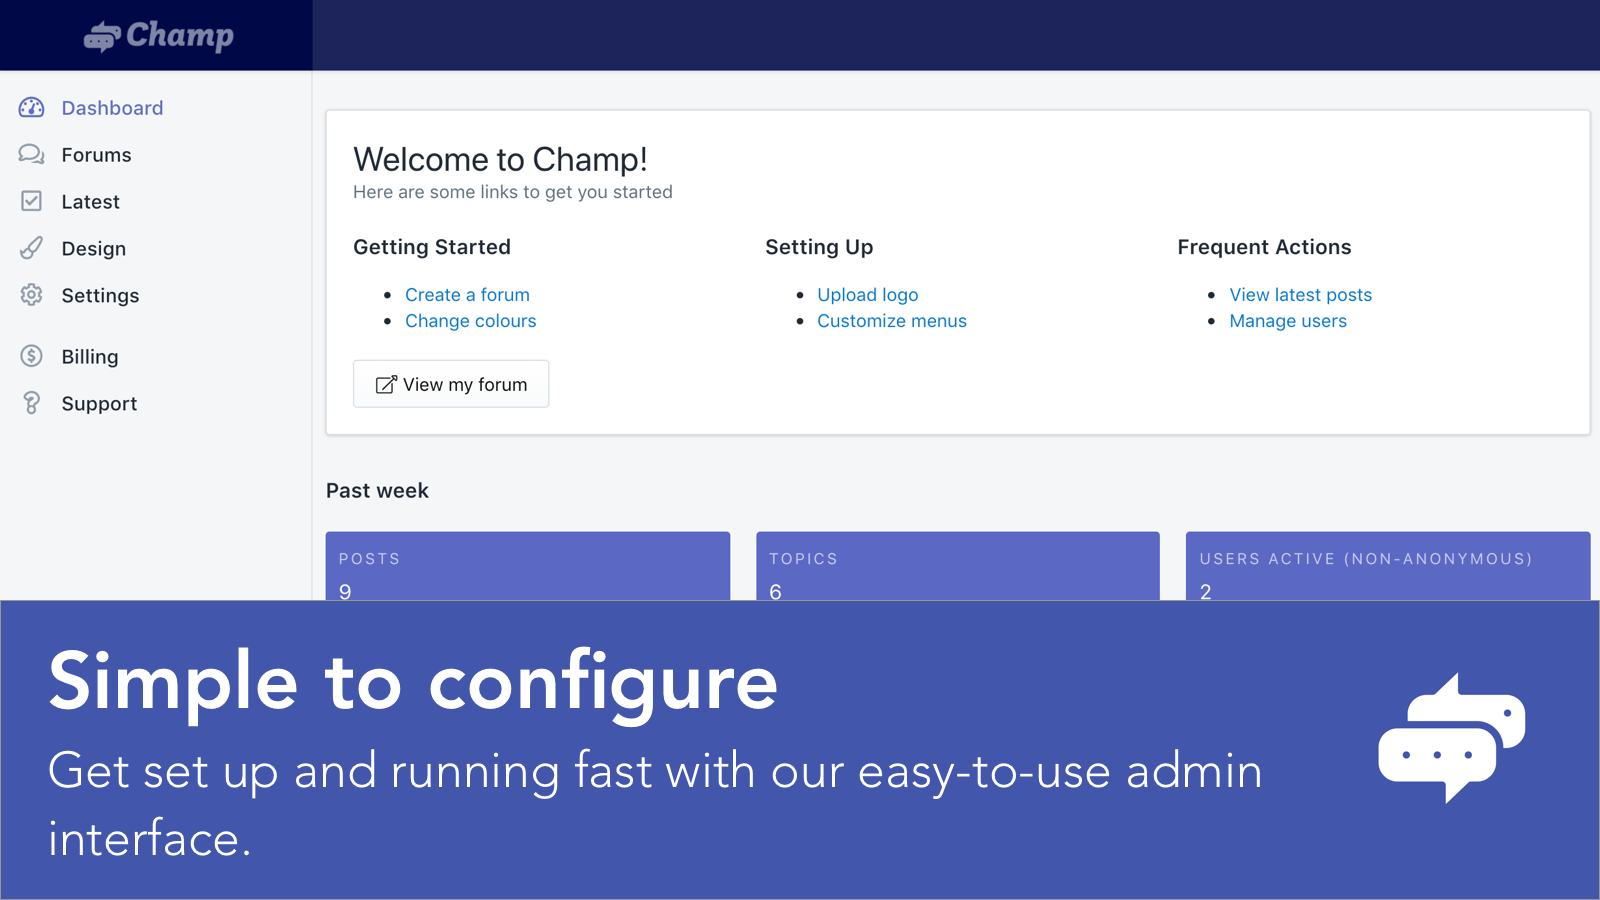 Forums are simple to configure